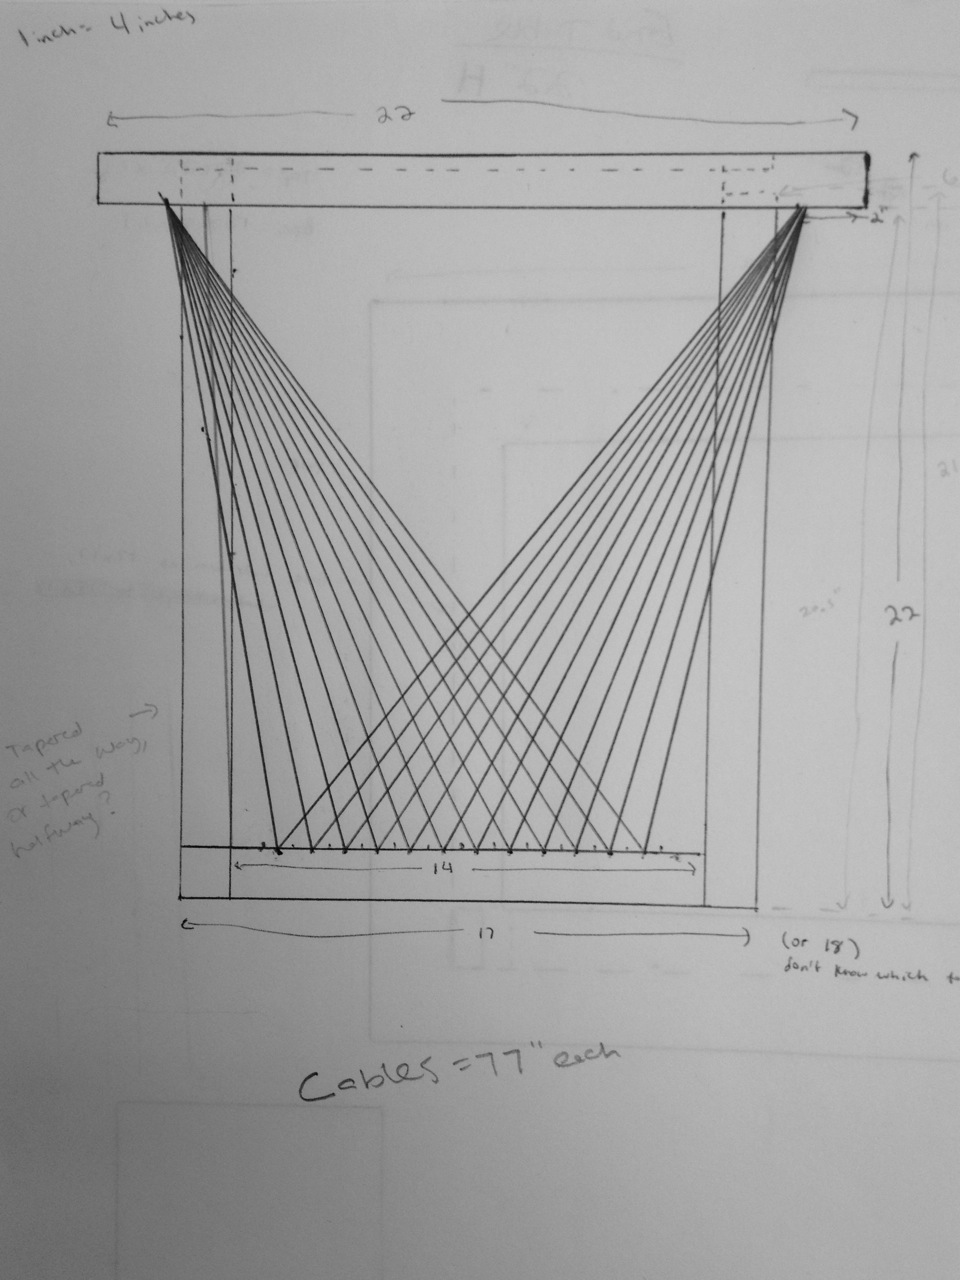 A more precise elevation drawing of the table - I use drawing like these to determine proportions and fine-tune the design